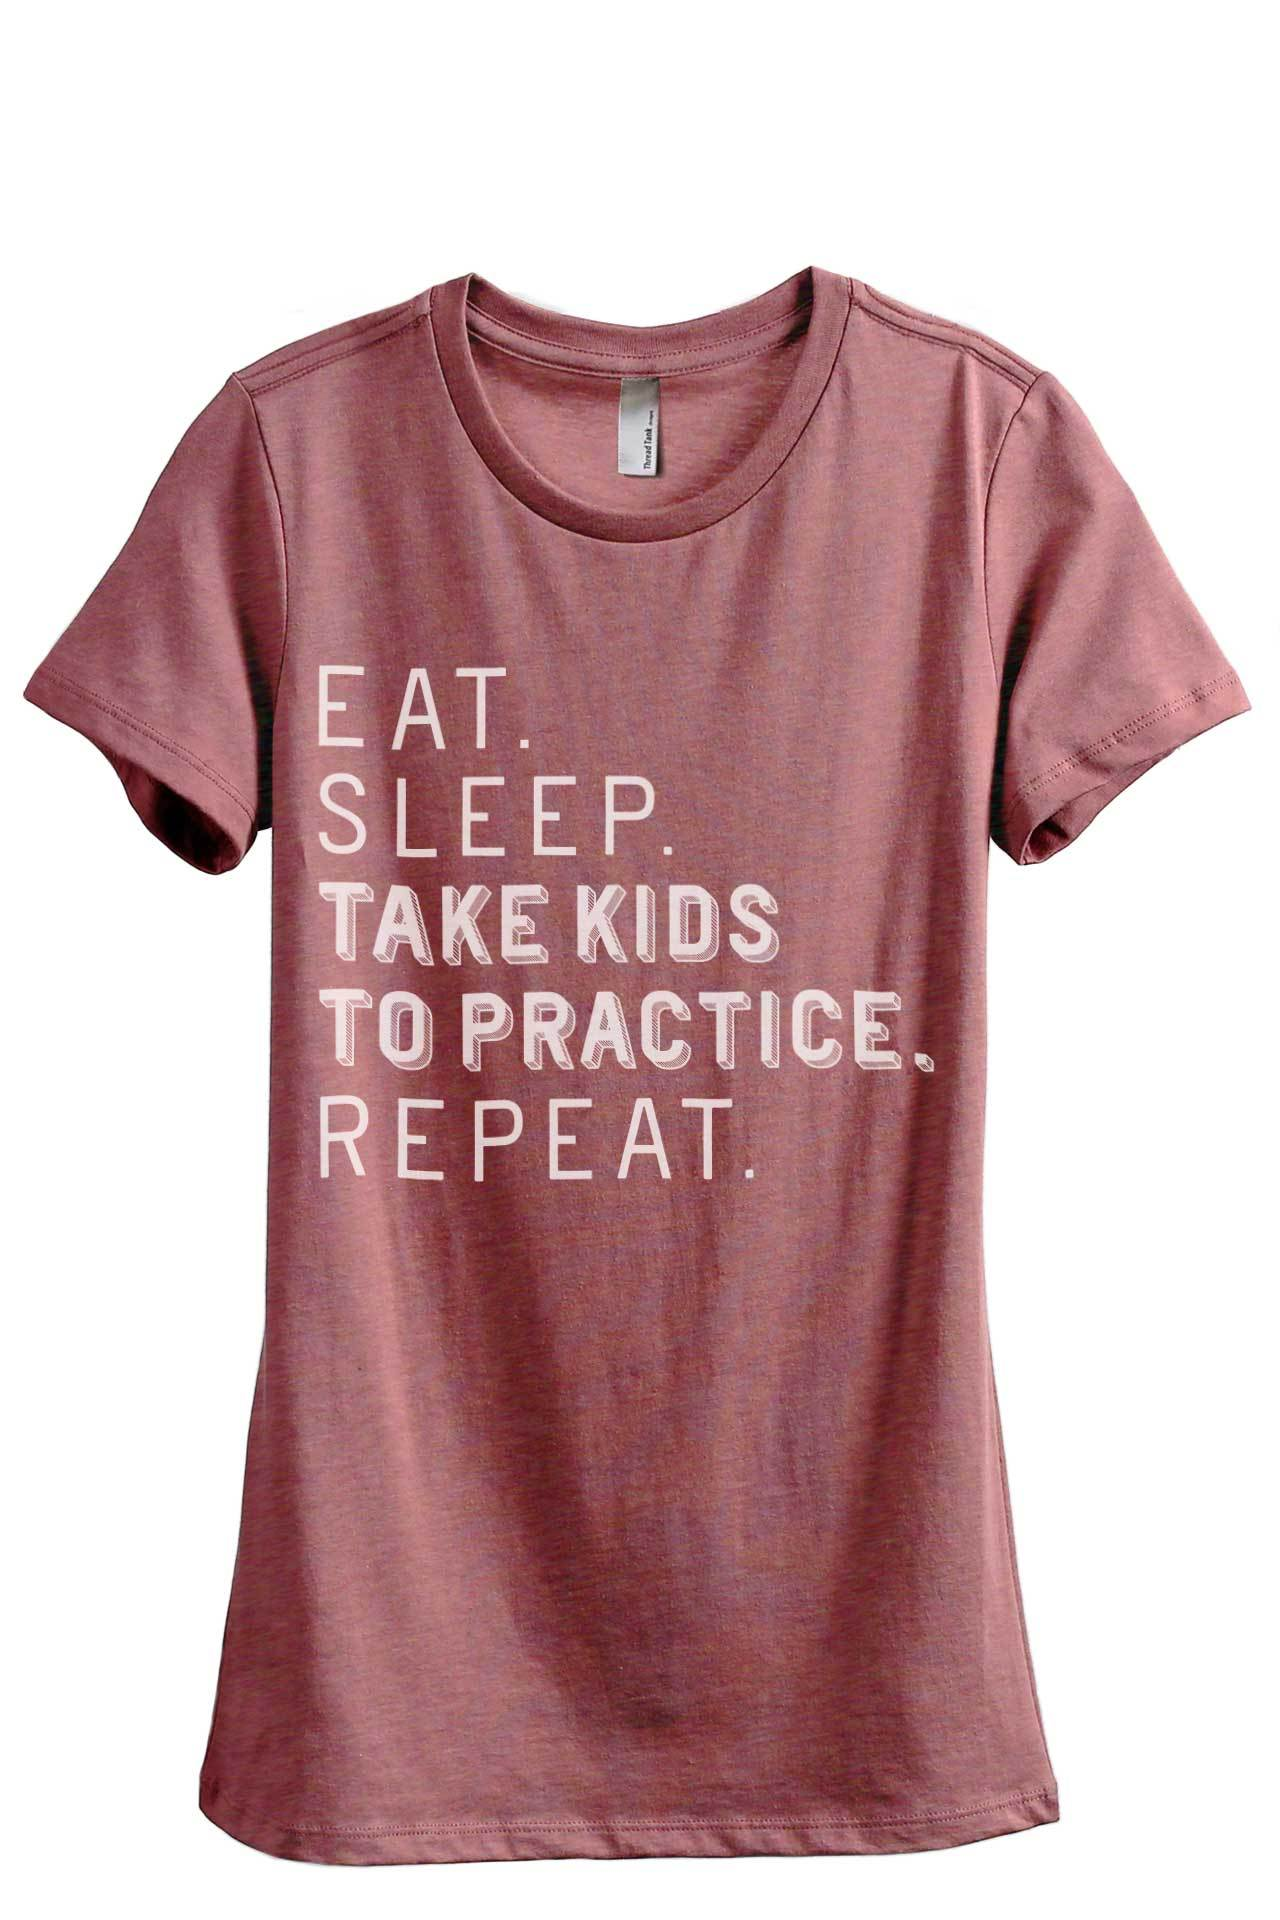 Eat Sleep Take Kids Practice Repeat - Thread Tank | Stories You Can Wear | T-Shirts, Tank Tops and Sweatshirts